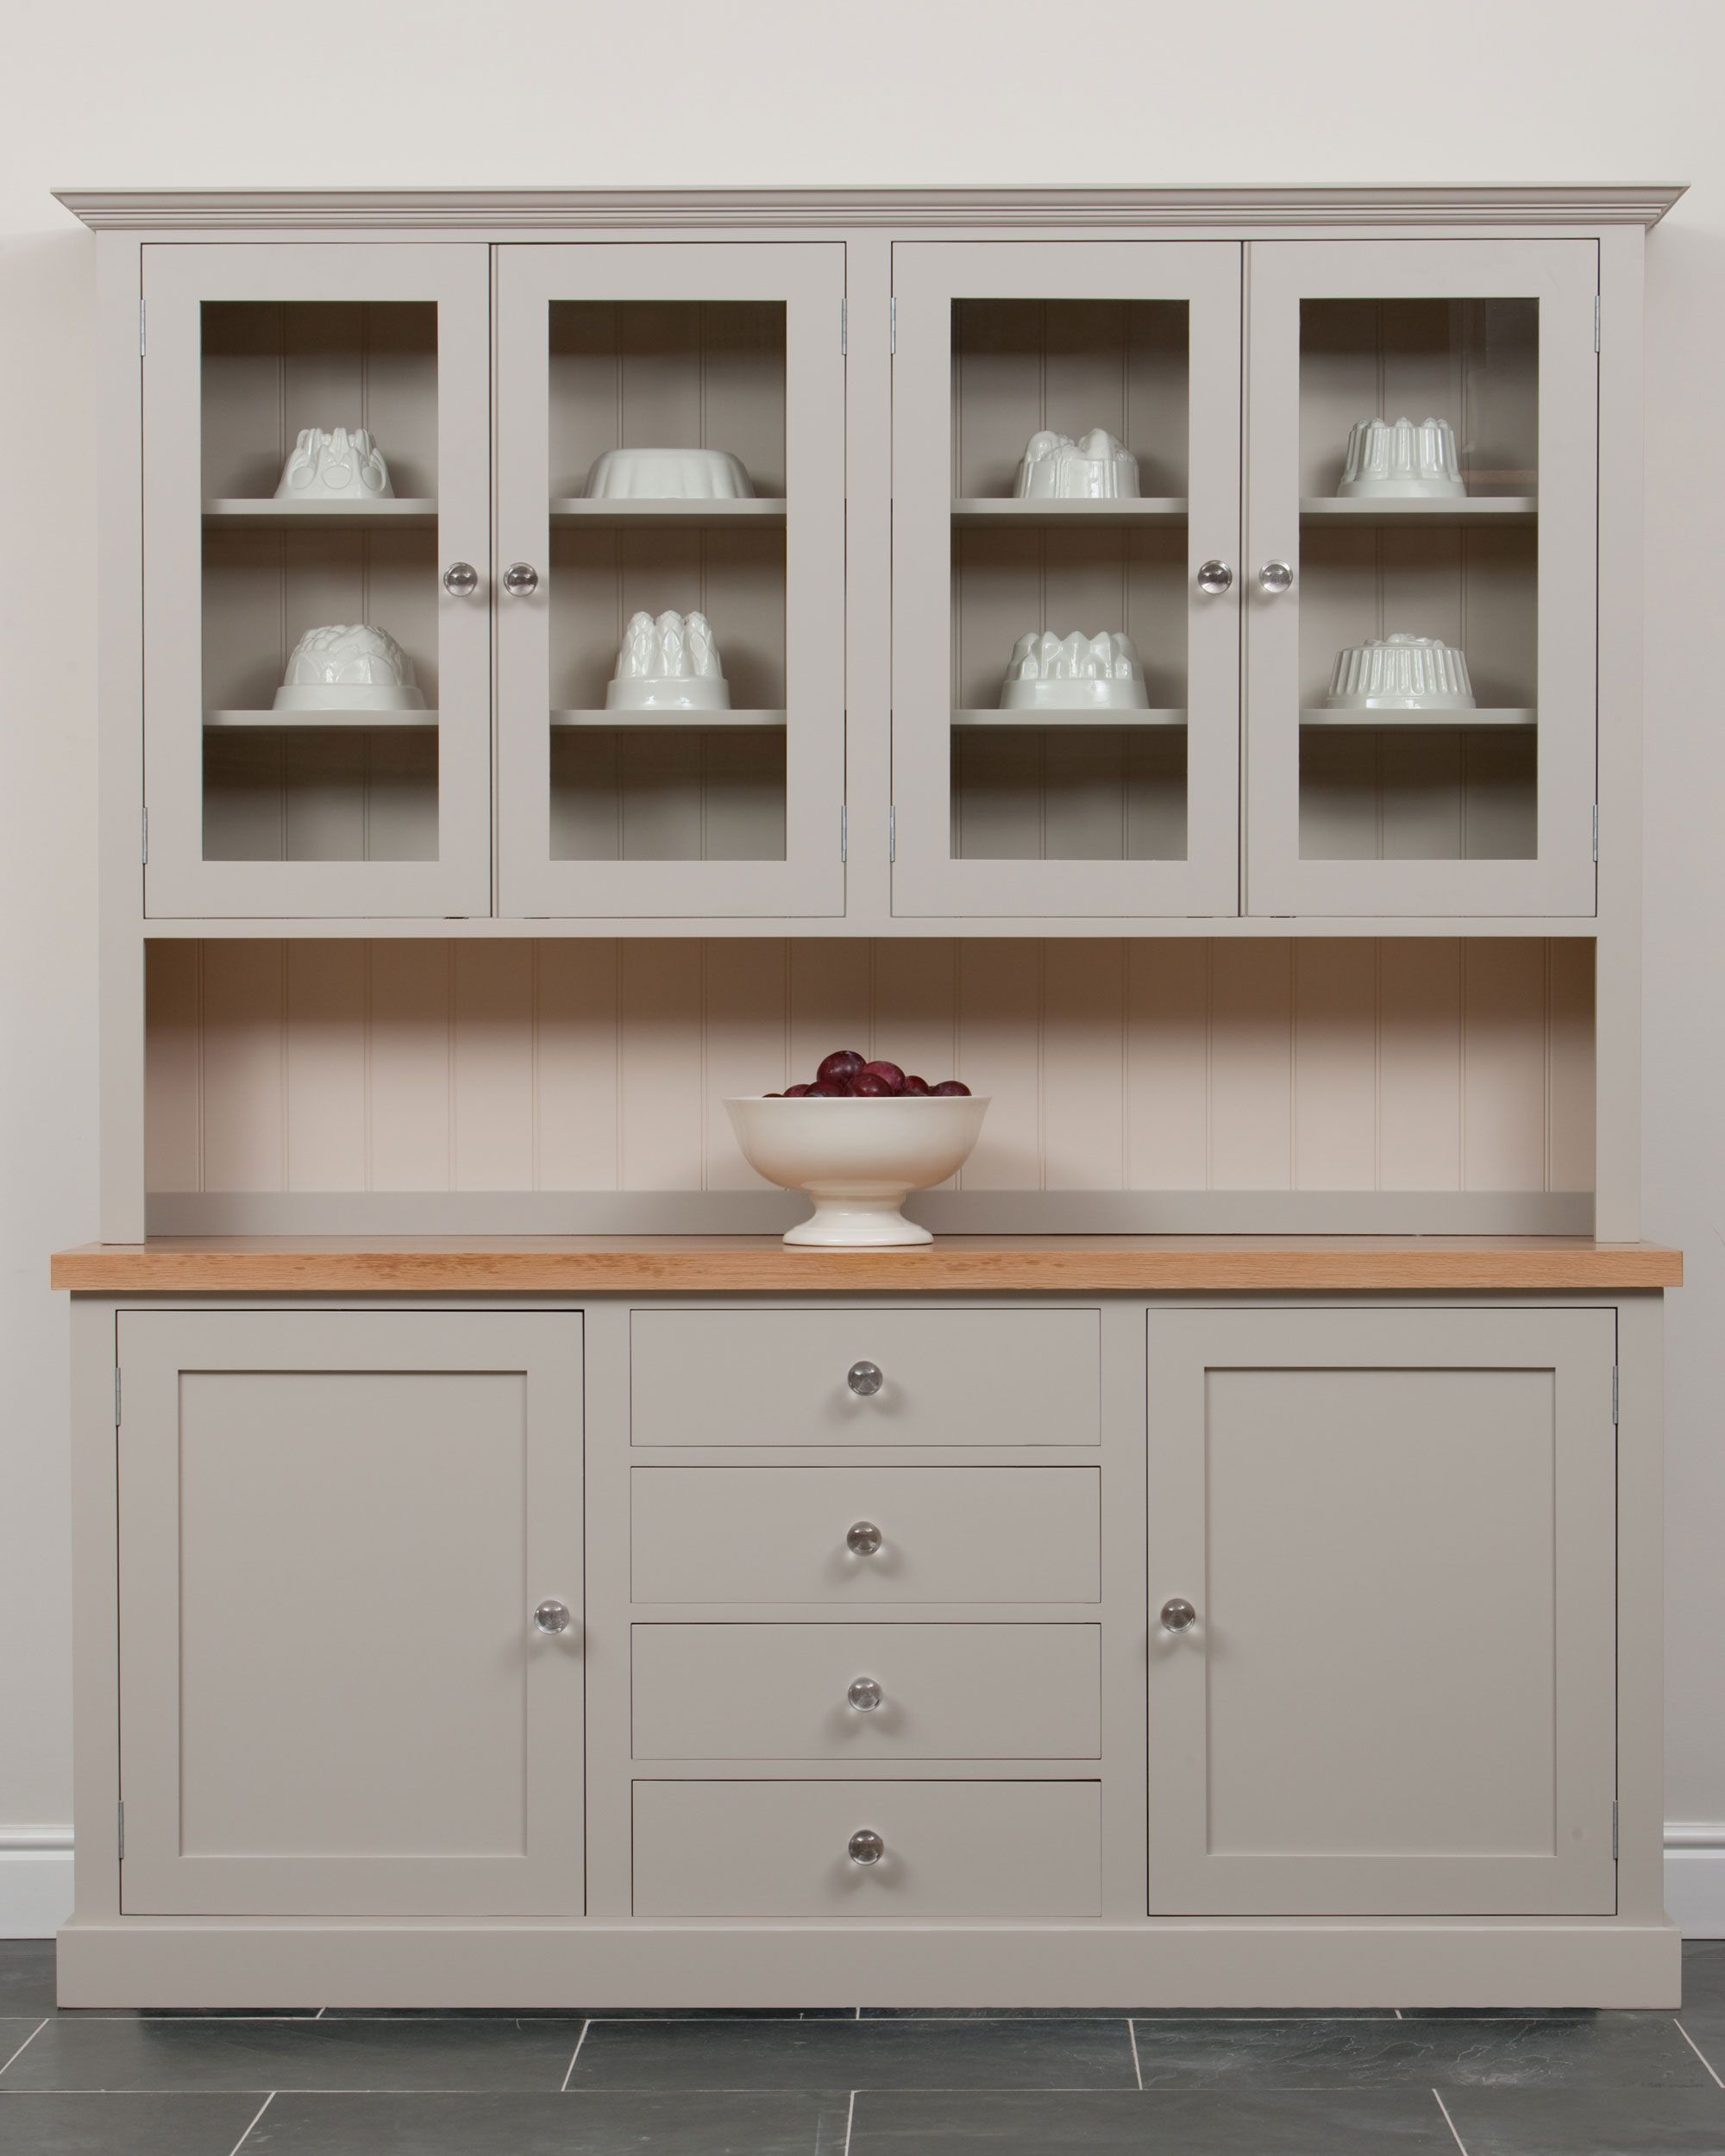 1000 images about kitchen dresser inspiration on pinterest kitchen dresser welsh dresser and dressers